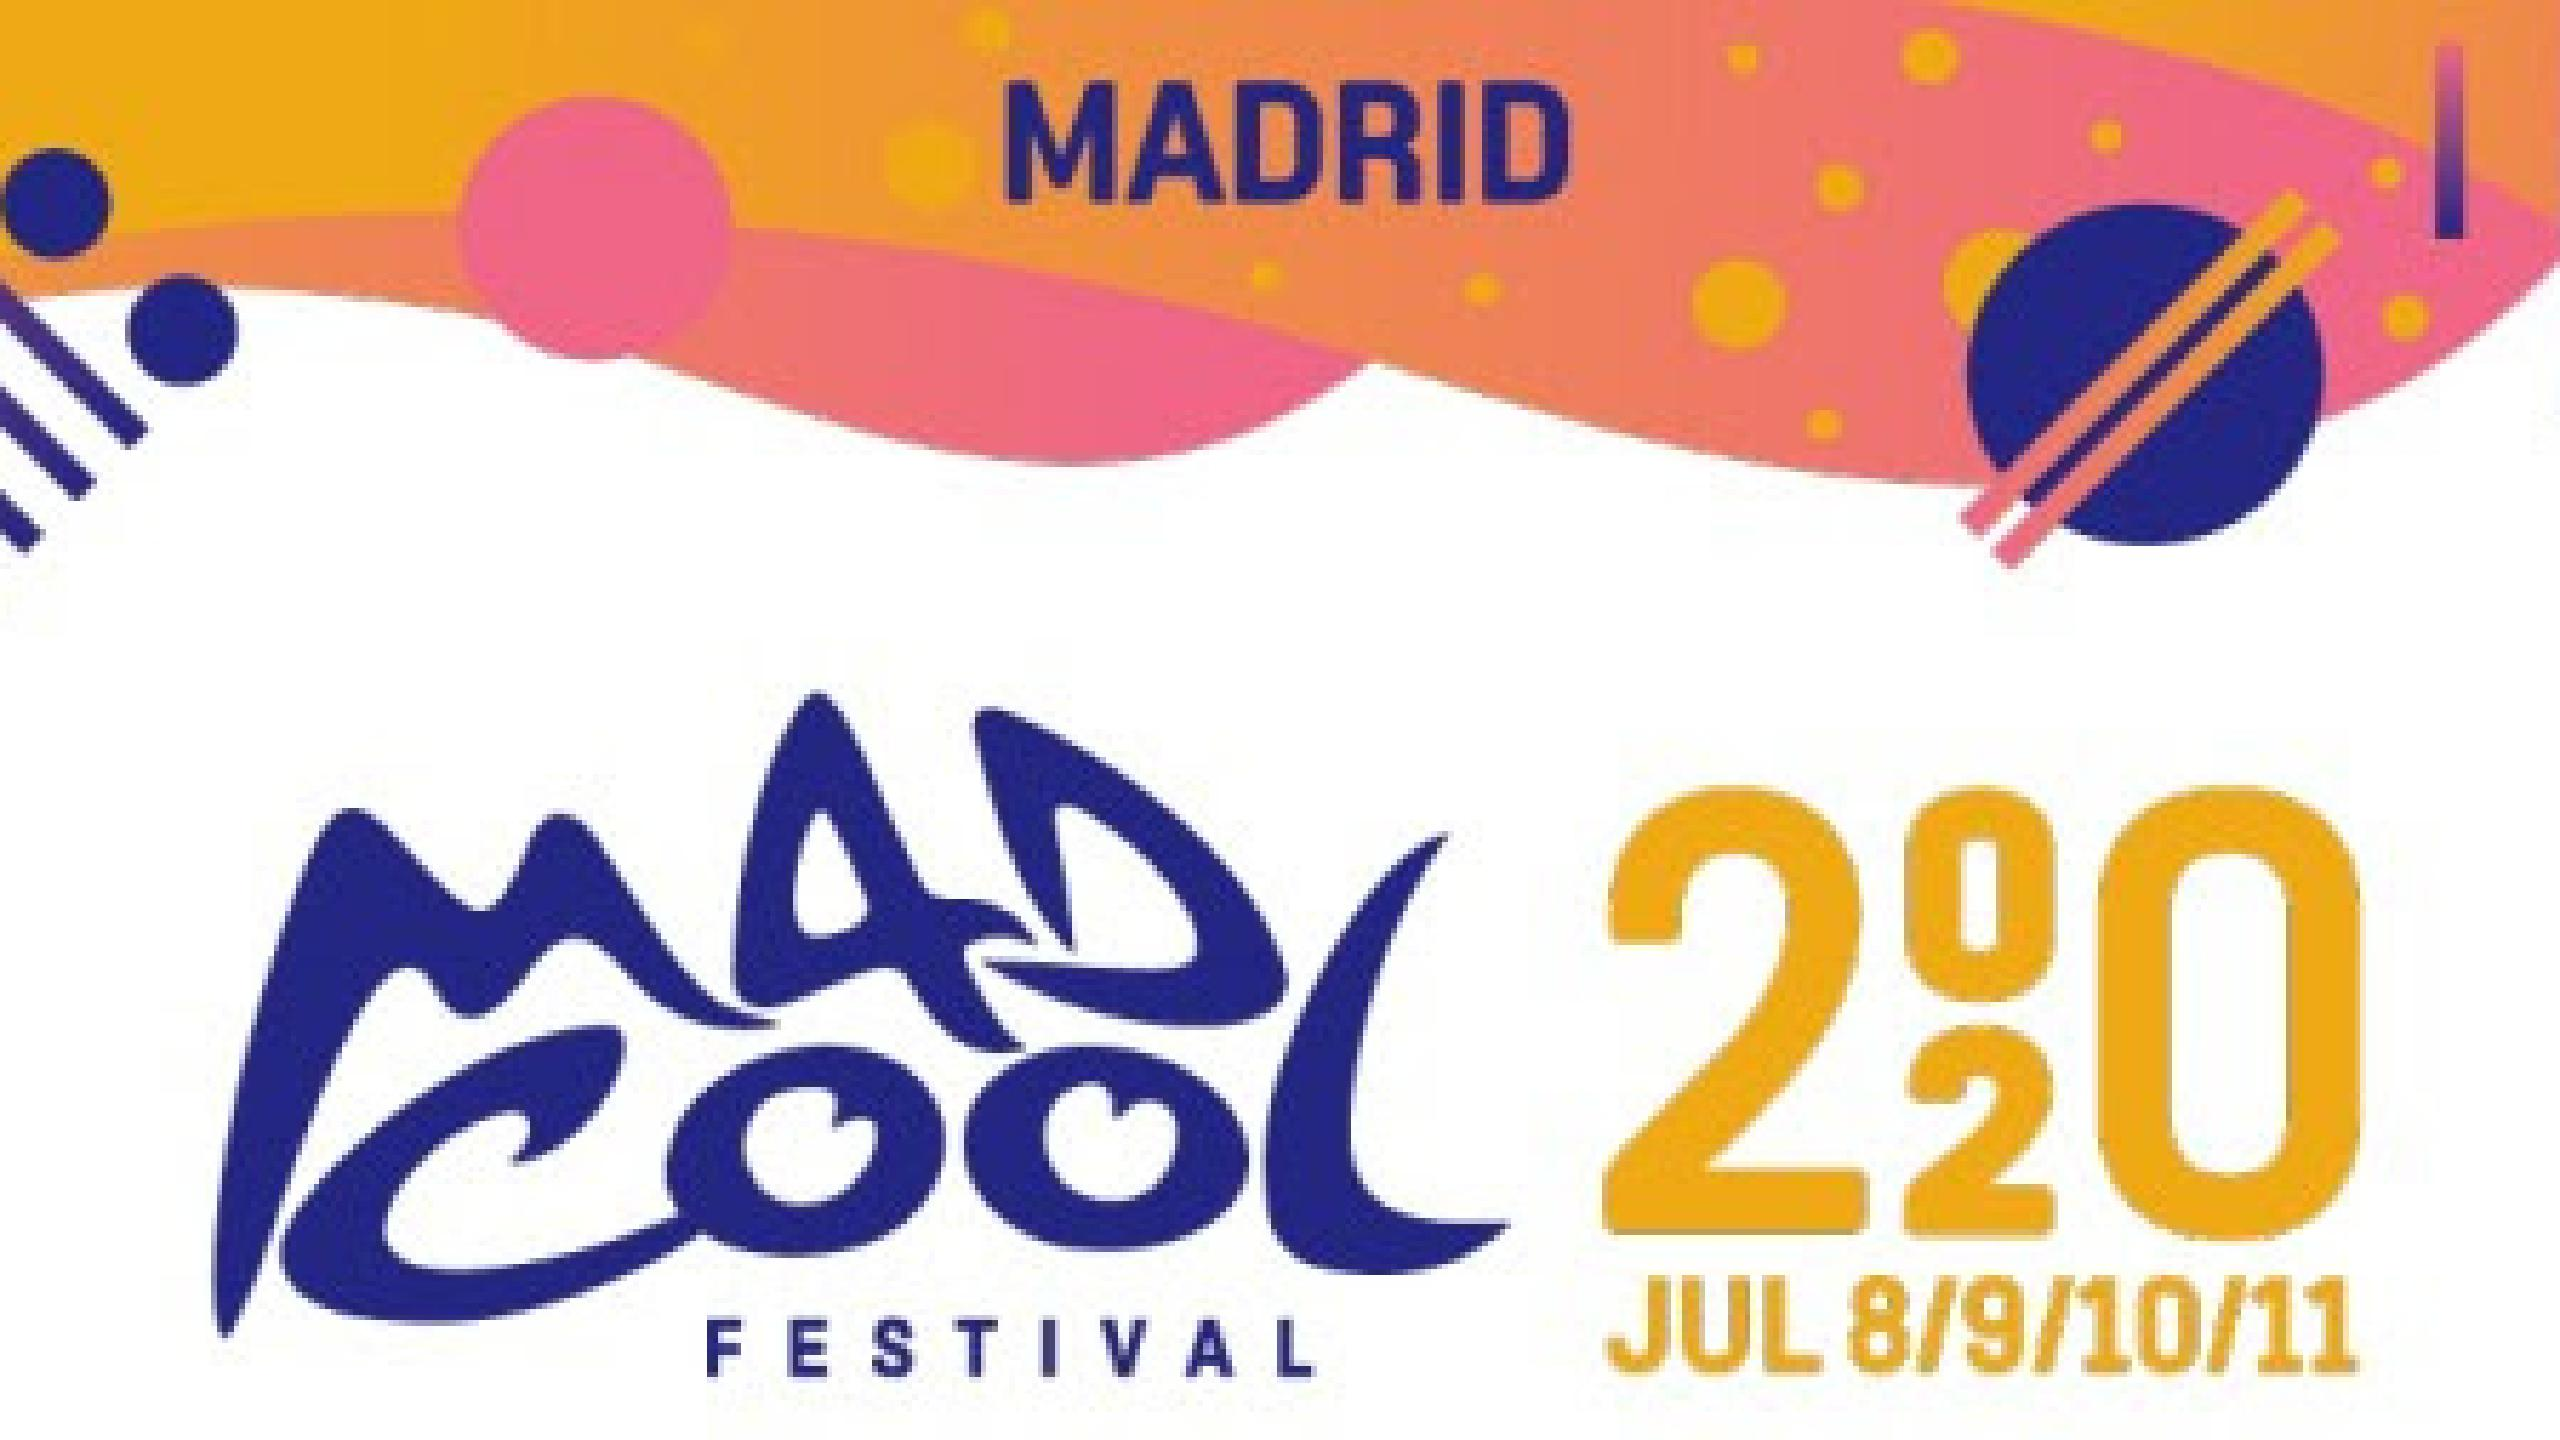 Tet Festival 2020.Mad Cool Festival 2020 Tickets Lineup Bands For Mad Cool